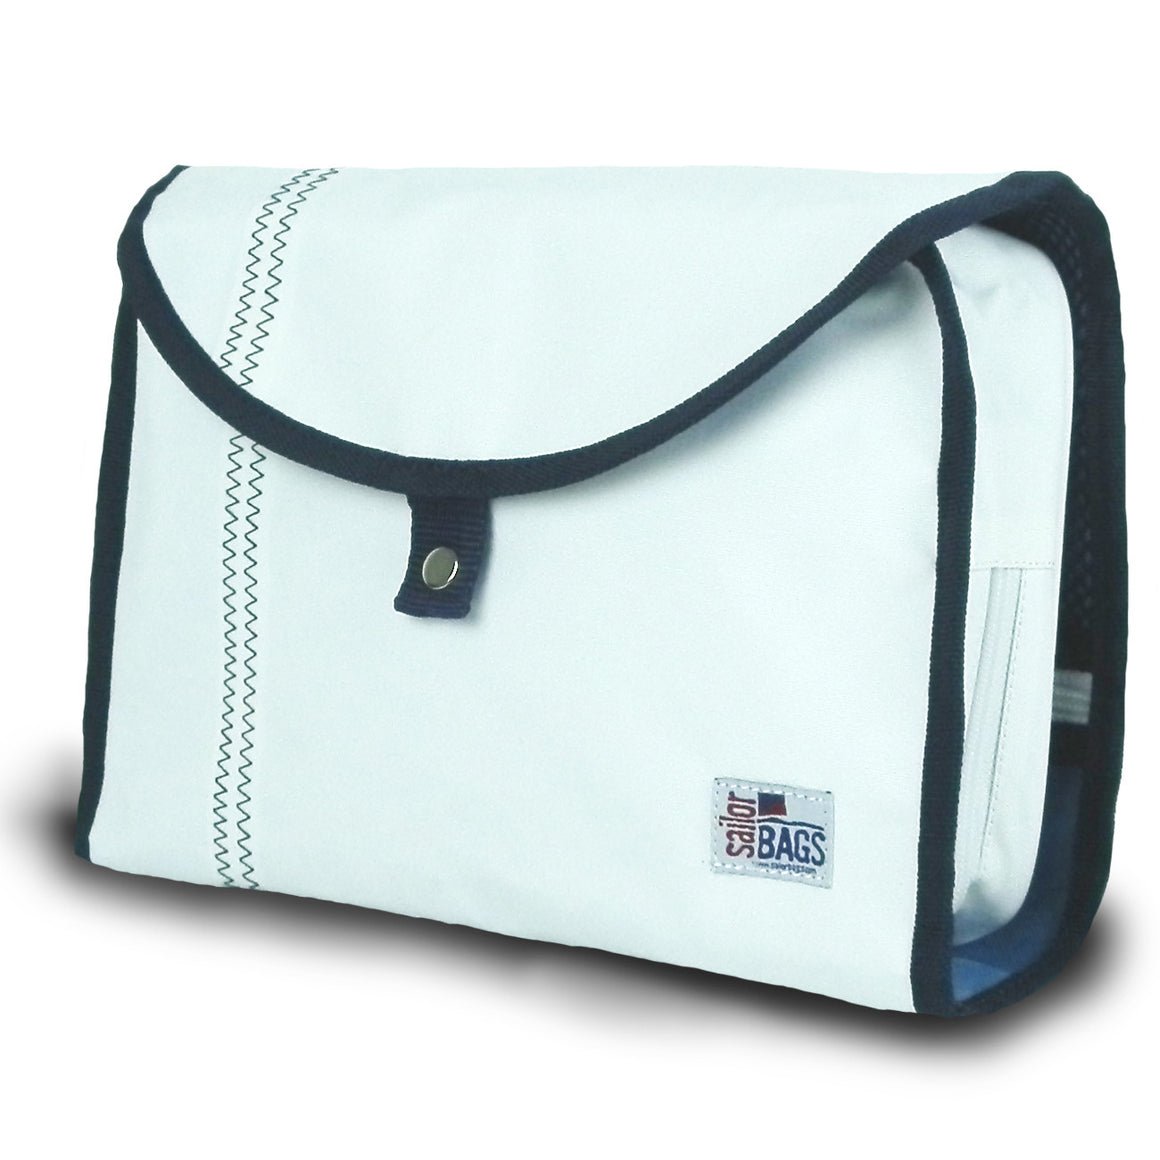 Newport Hanging Dopp Kit by SailorBags